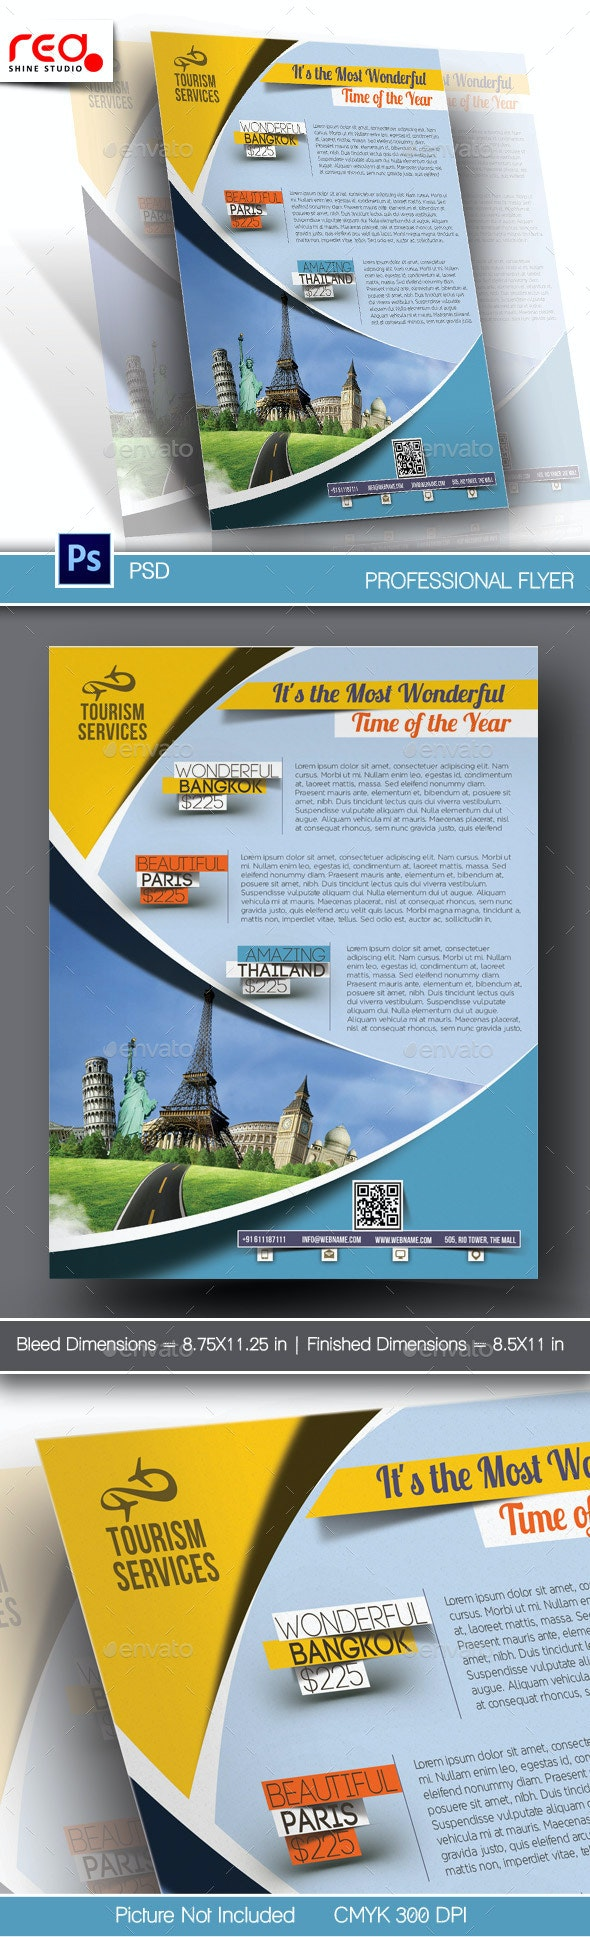 Holiday Travel Flyer & Poster Template - Corporate Flyers